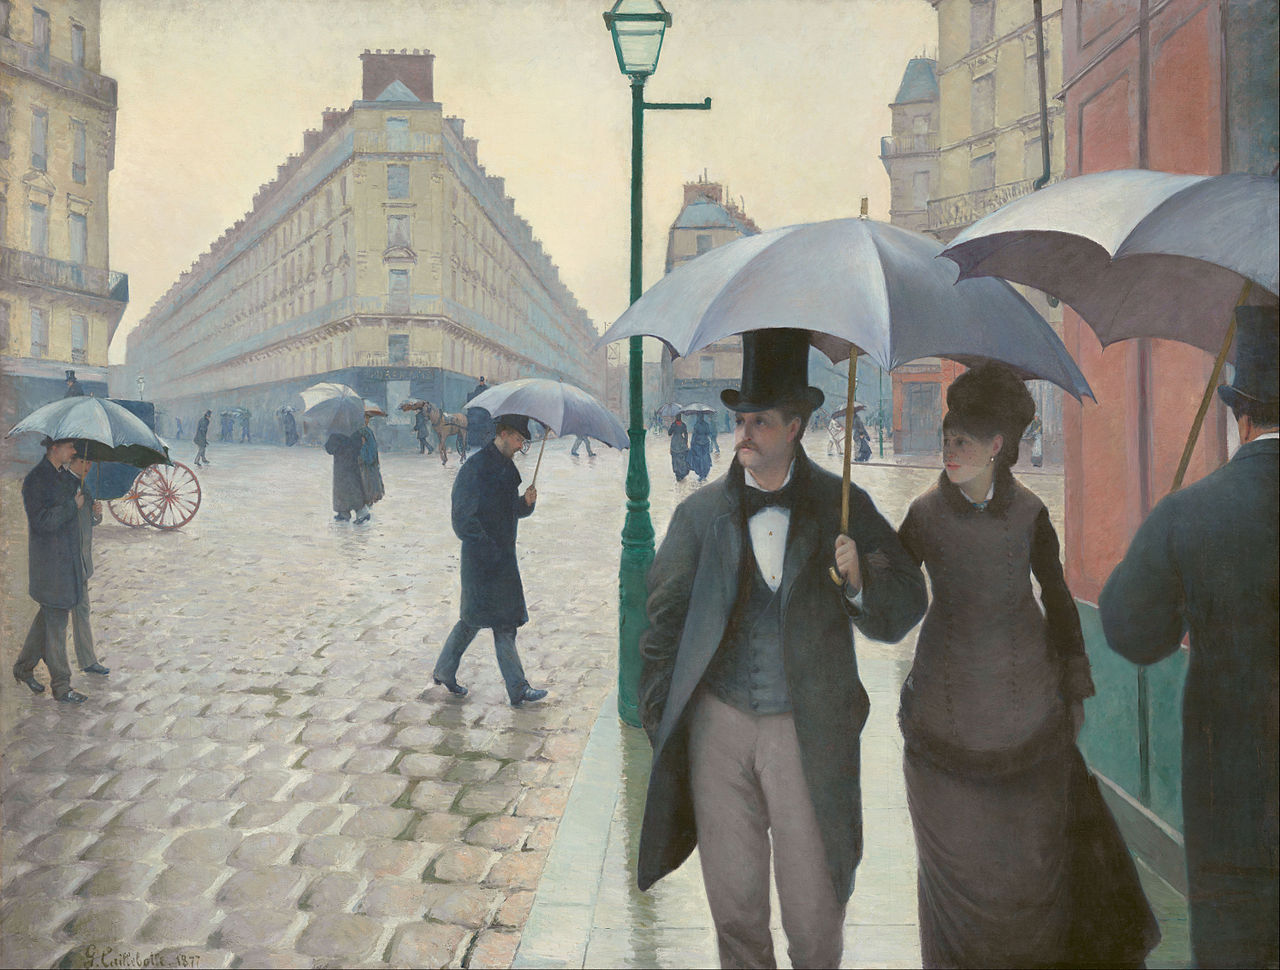 Paris; Rainy Day by Gustave Caillebotte (1877)